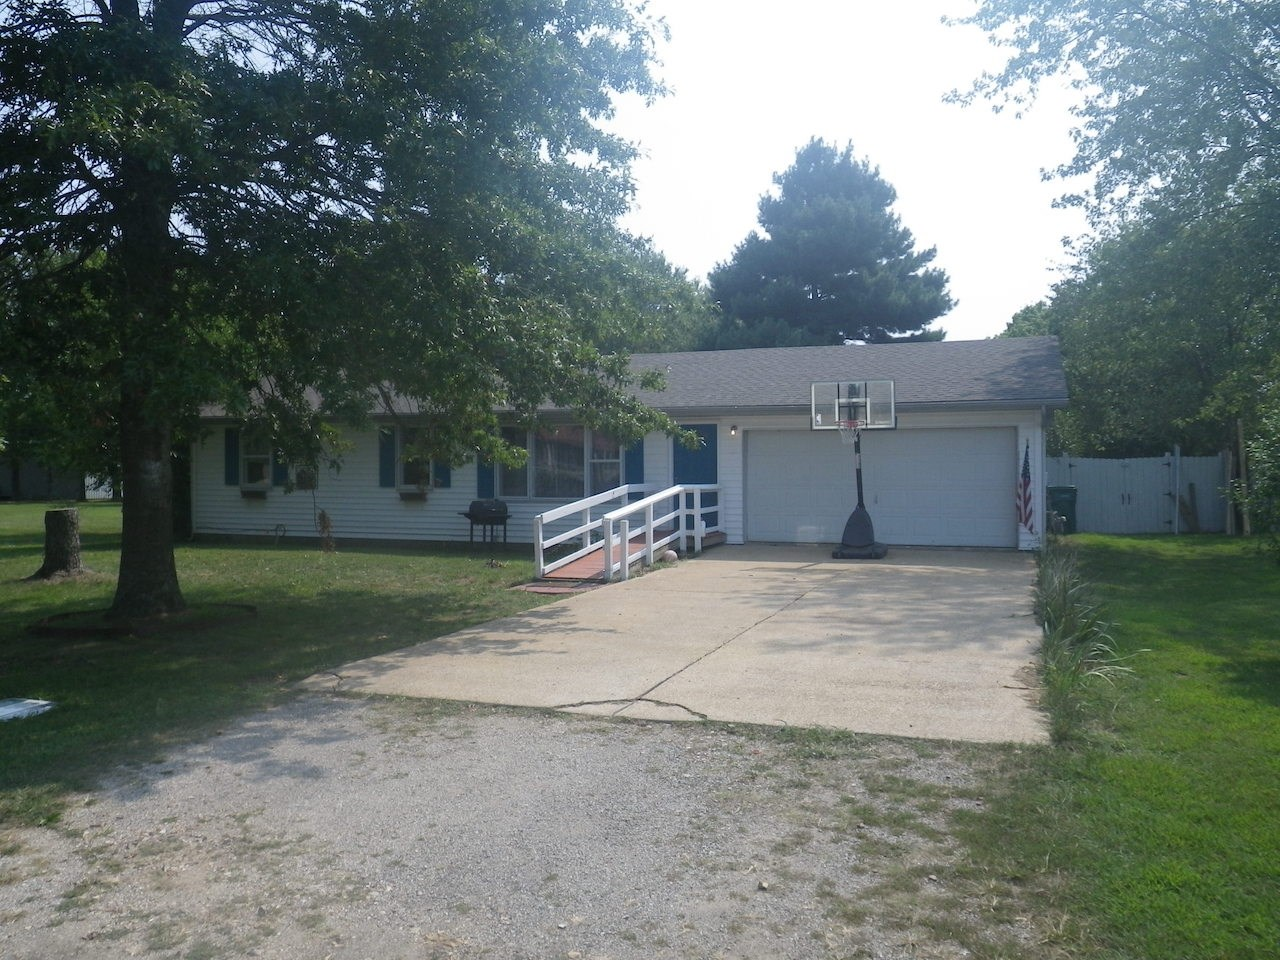 Home for Sale in Howell County, MO!